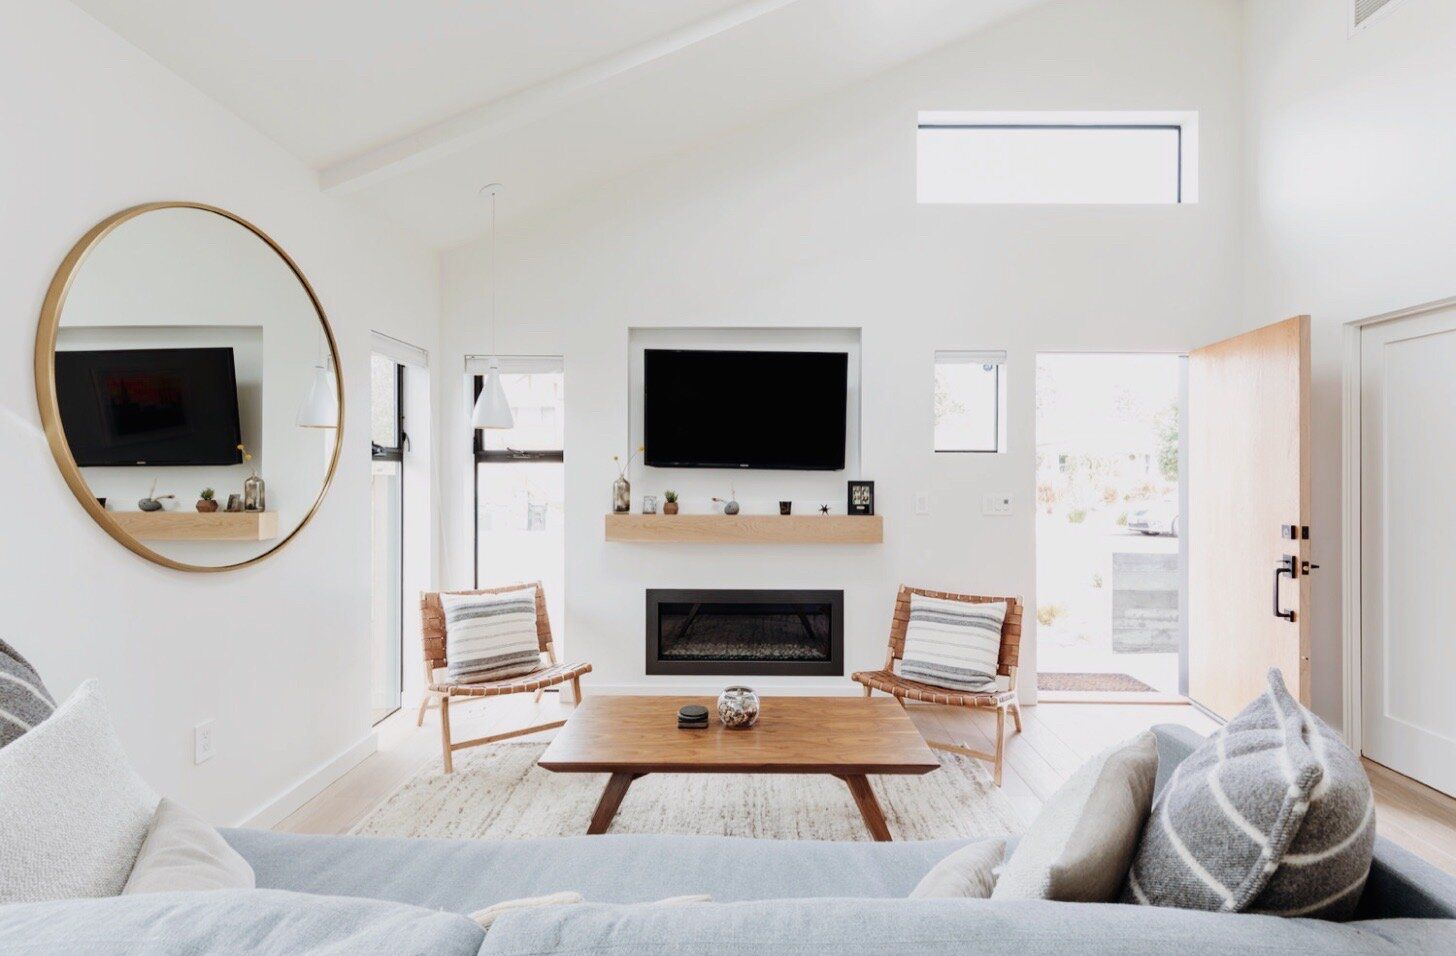 Bright white living room with wooden furniture.